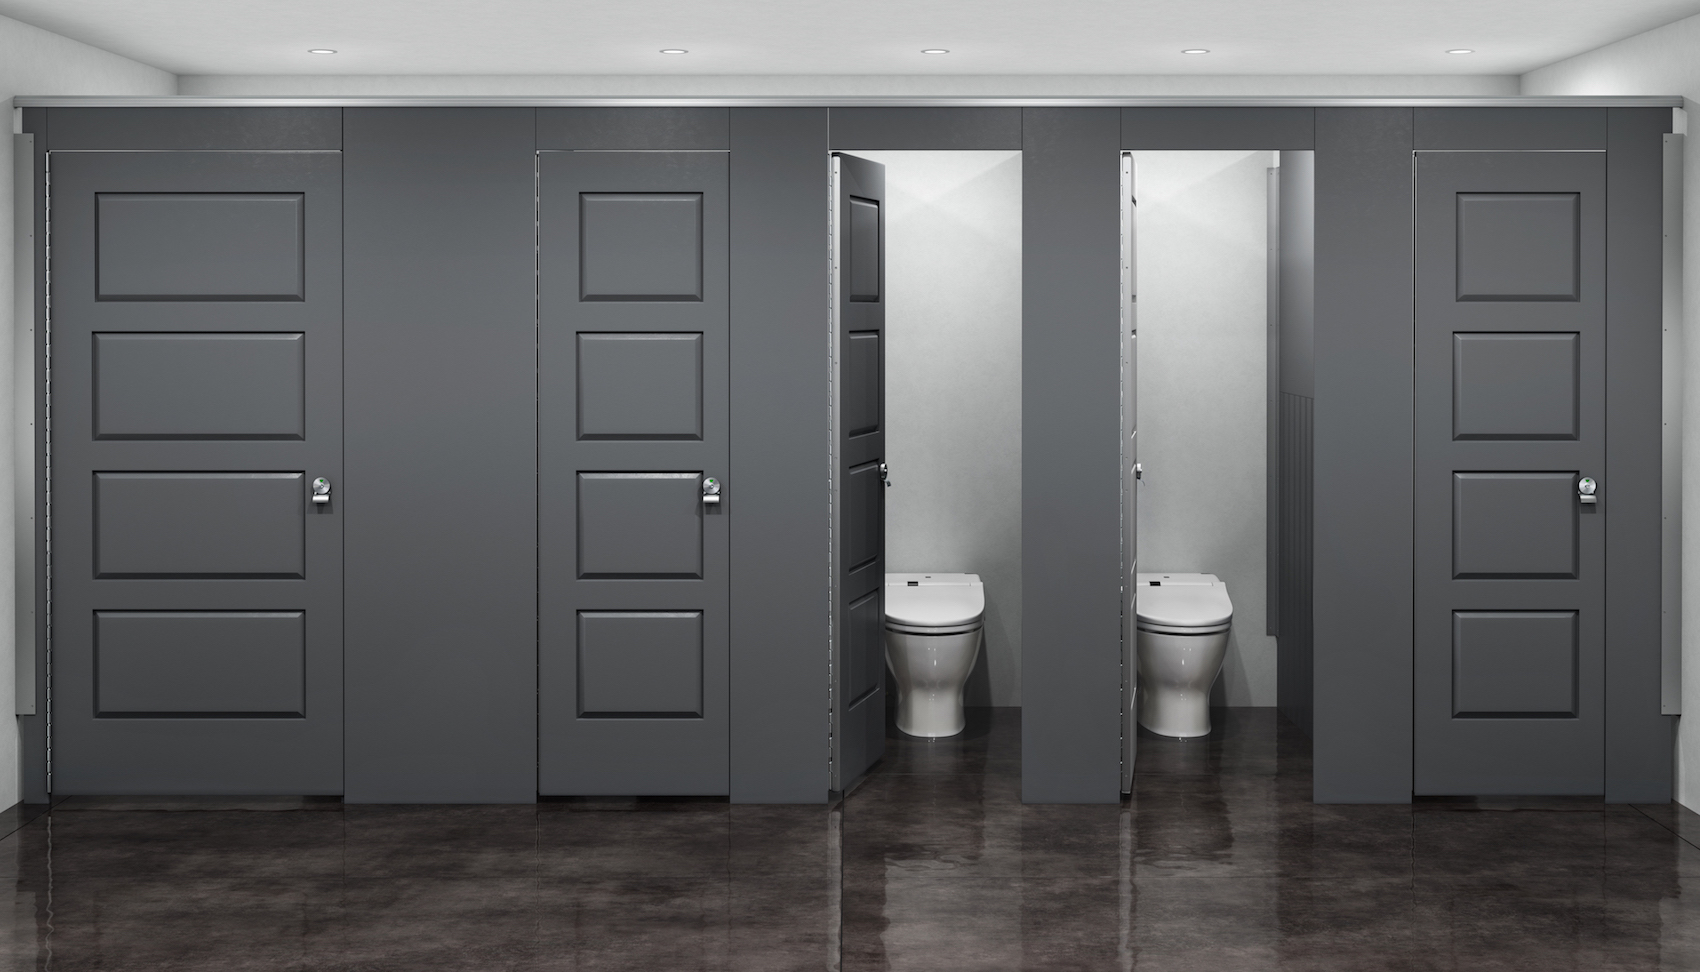 Aria Partitions in Industrial Restroom